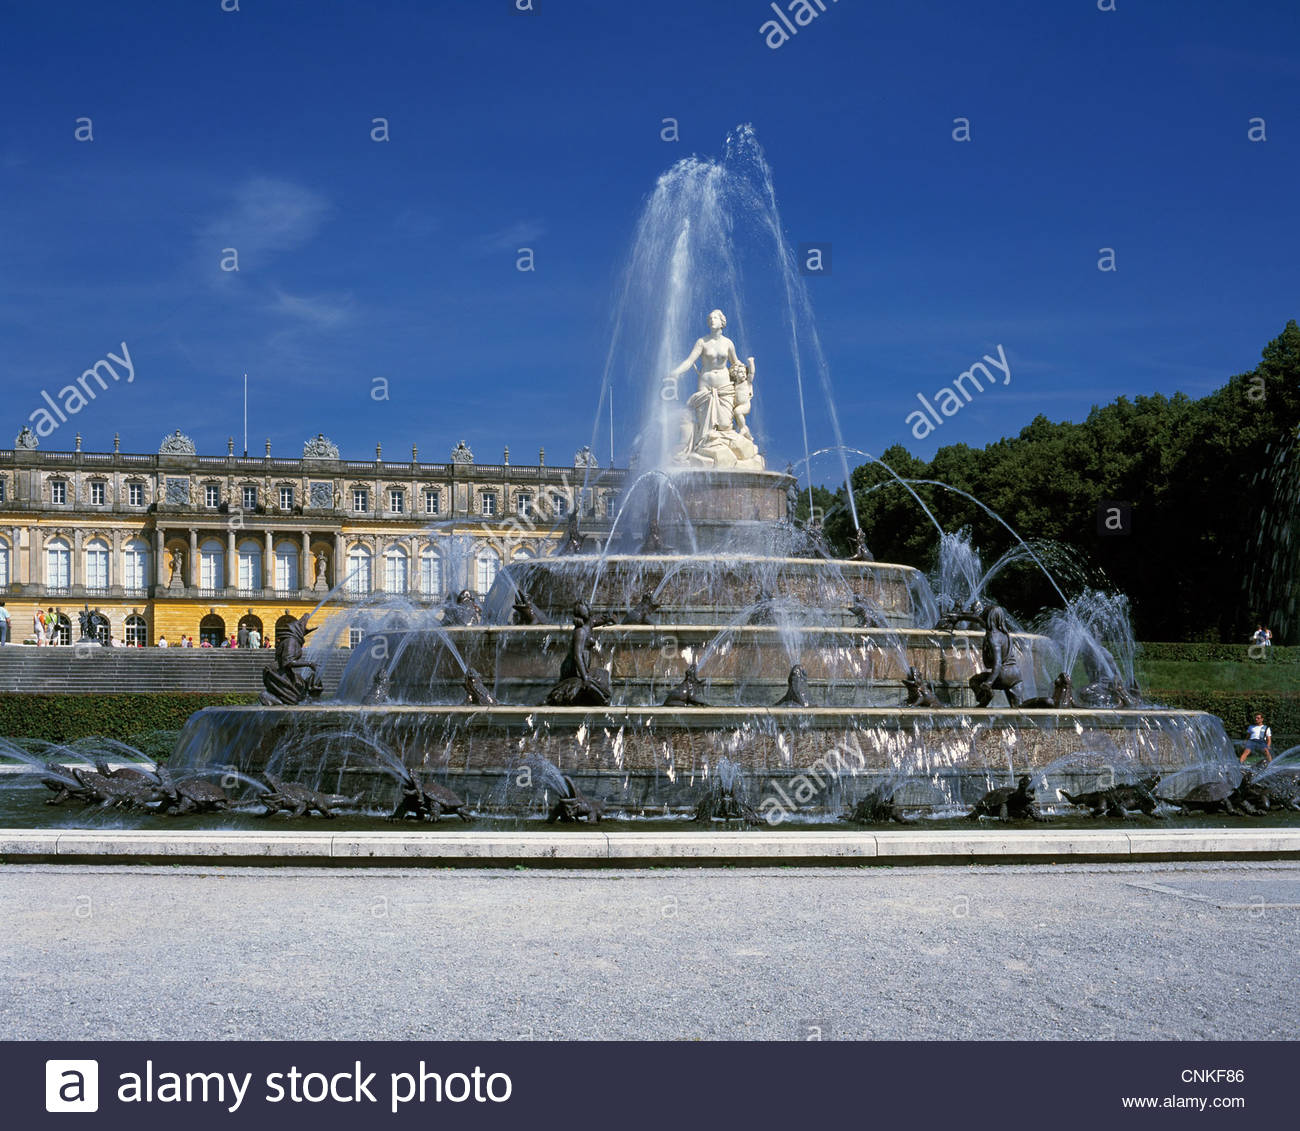 Schloss Herrenchiemsee The Bavarian Alps, Herrenchiemsee Palace Castle Statue Stock Photos & Herrenchiemsee ...